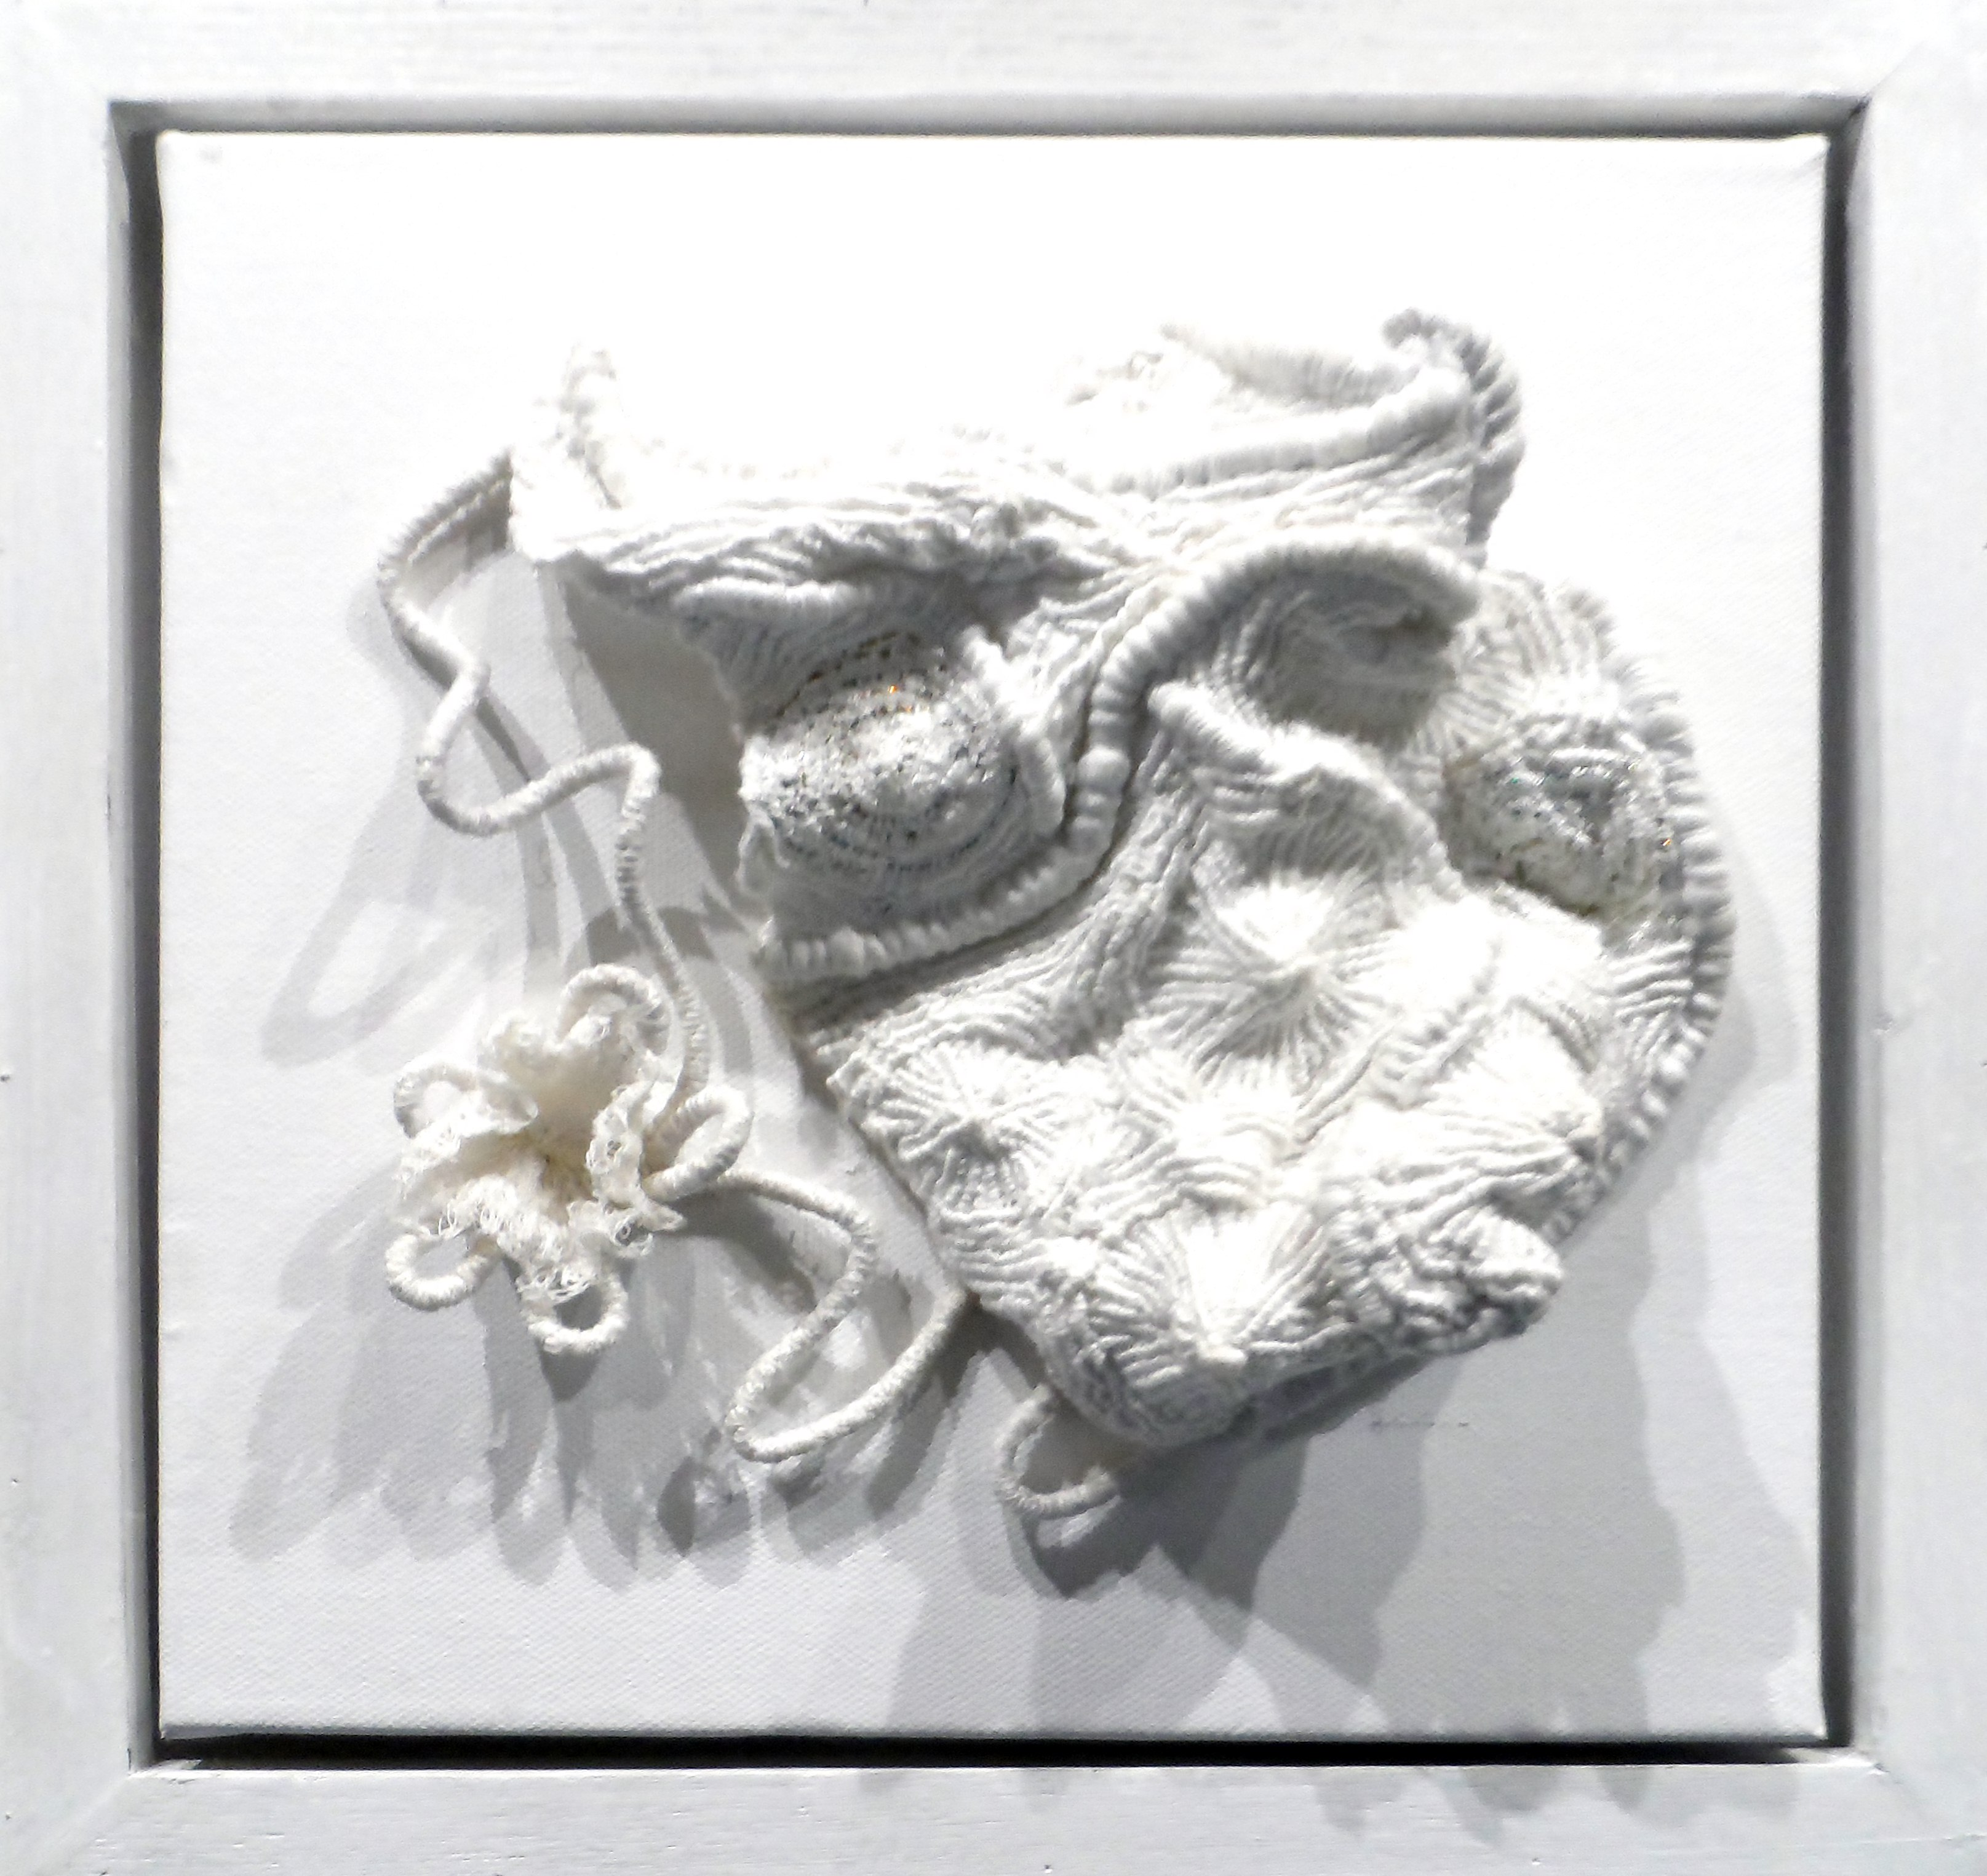 SEASHELLS 1 by Helen Cooper, whitework /manipulated fabric, Re-View Textile Group, Frodsham 2019